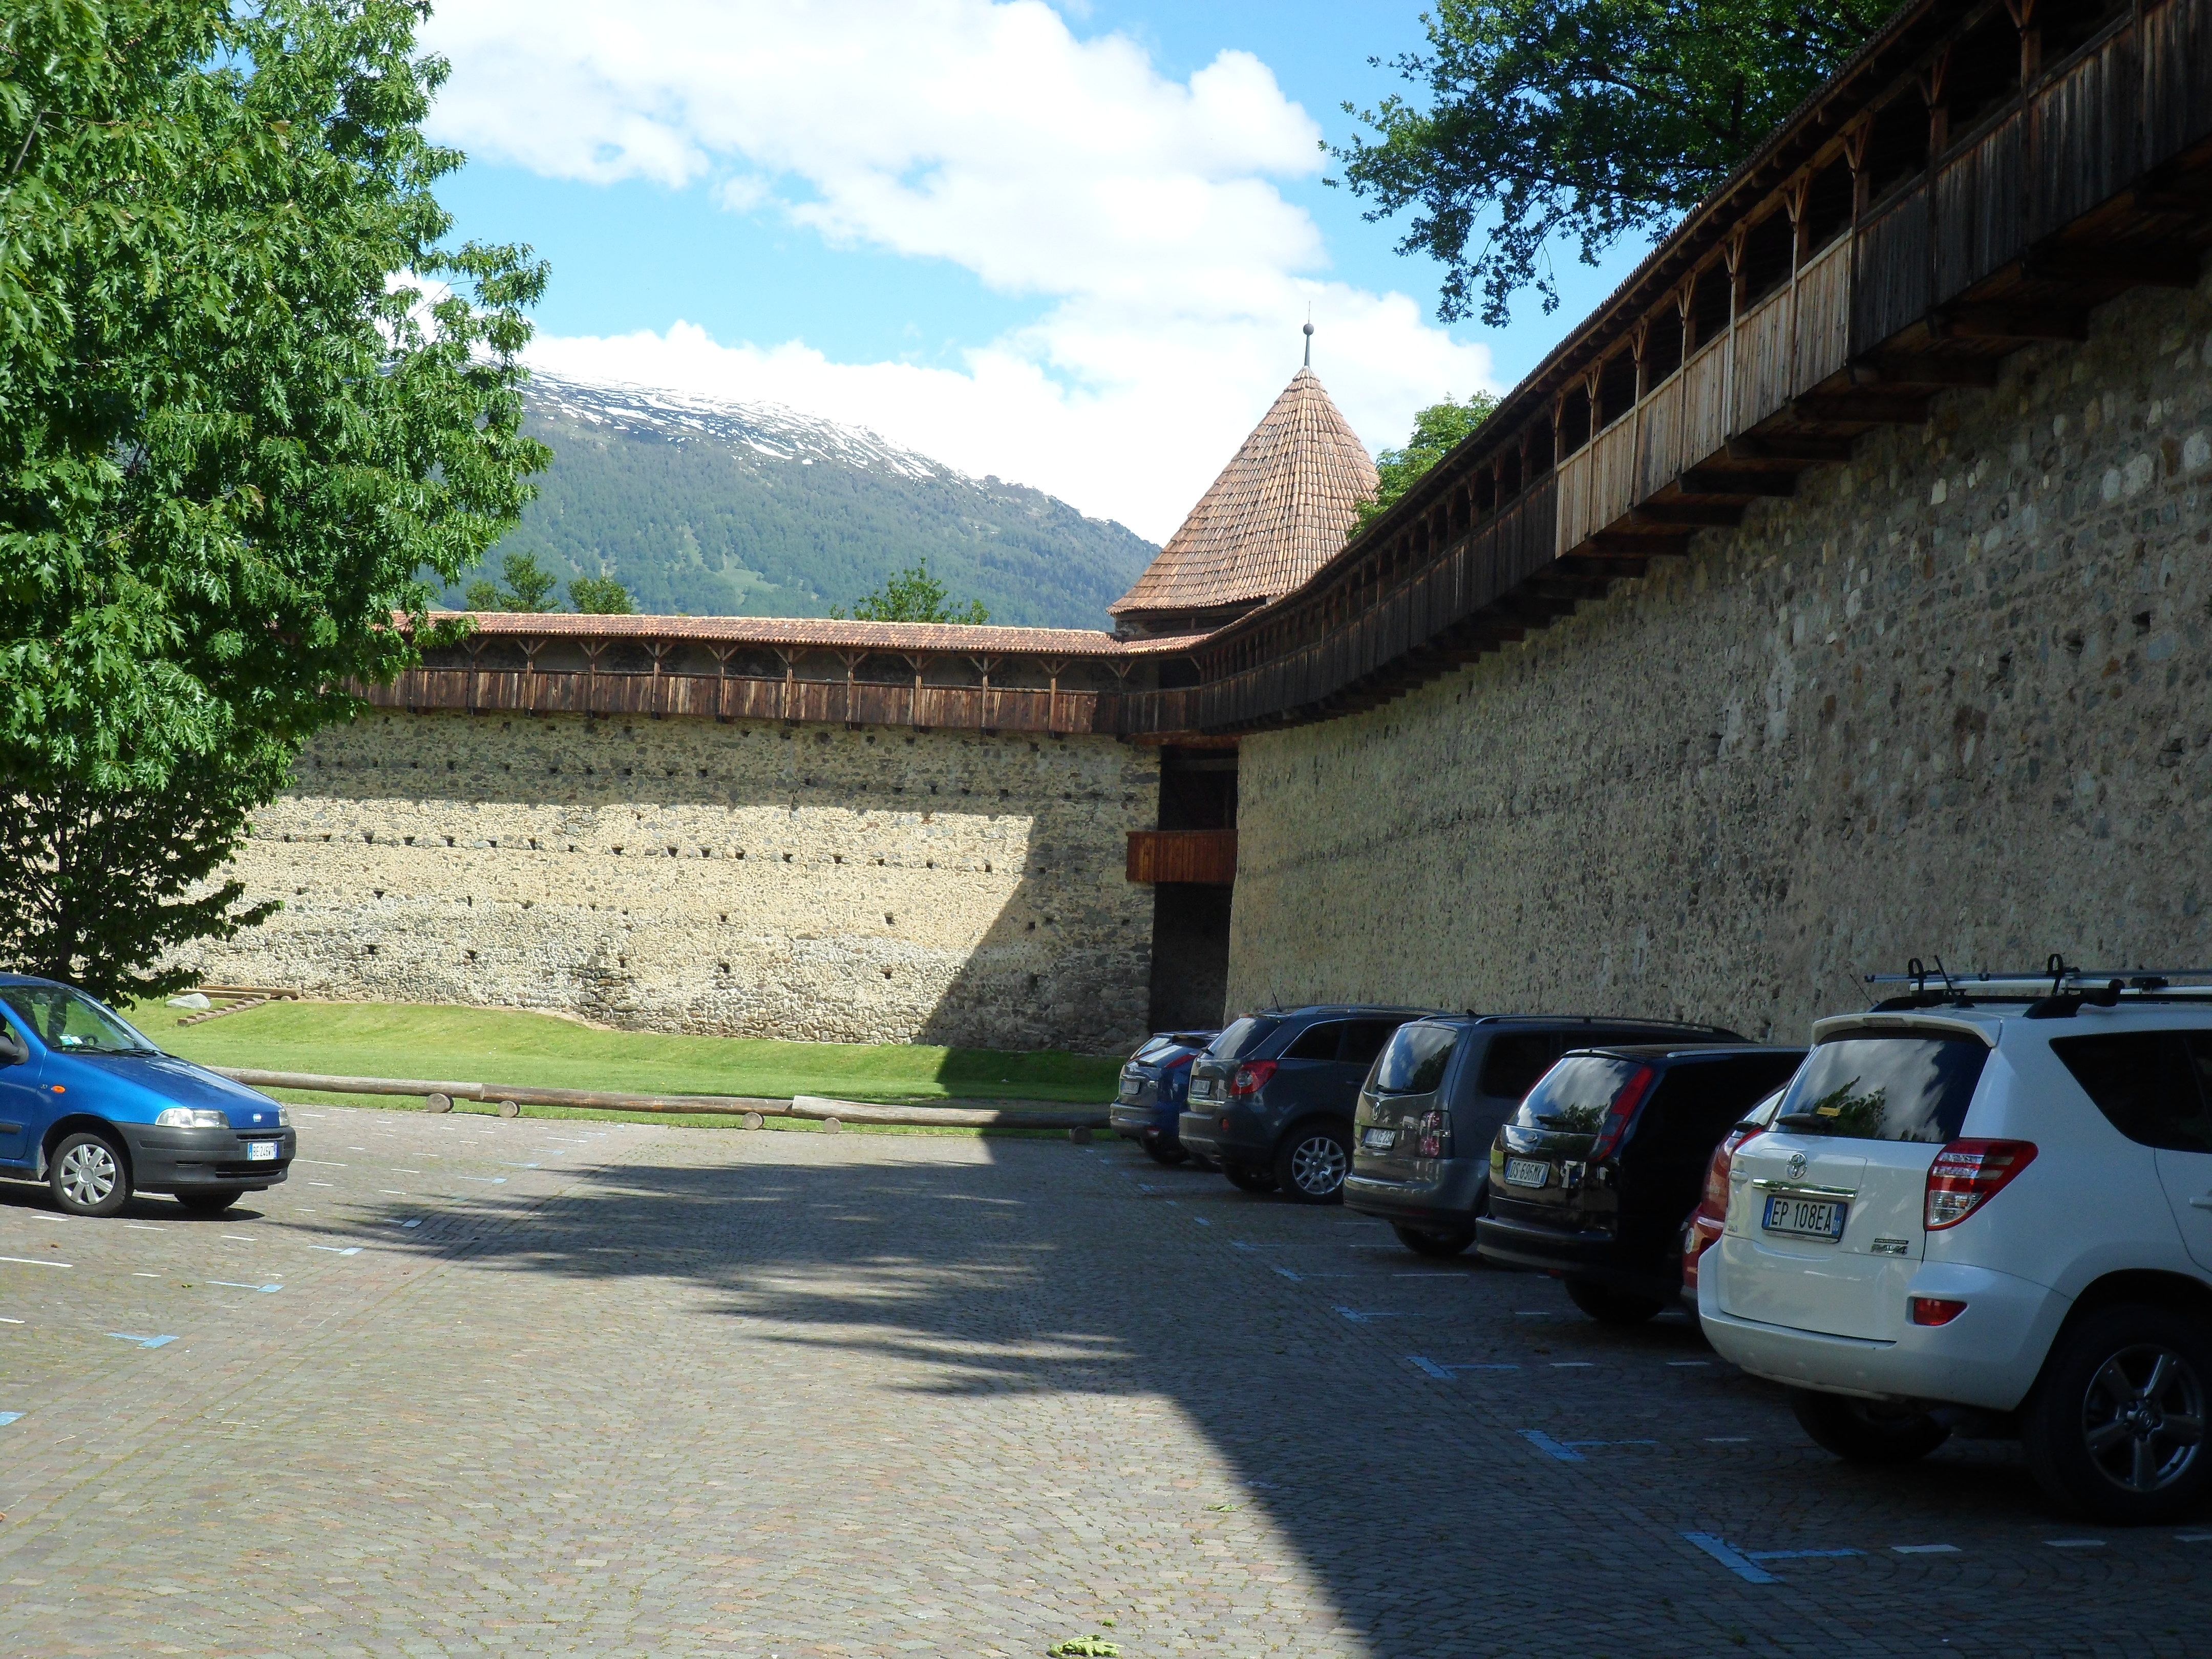 Two tall stone walls with wooden galleries along their top meet at right angles in  a round stone tower with a pointed roof and no back.  In the space between the walls are a parking lot and a green field